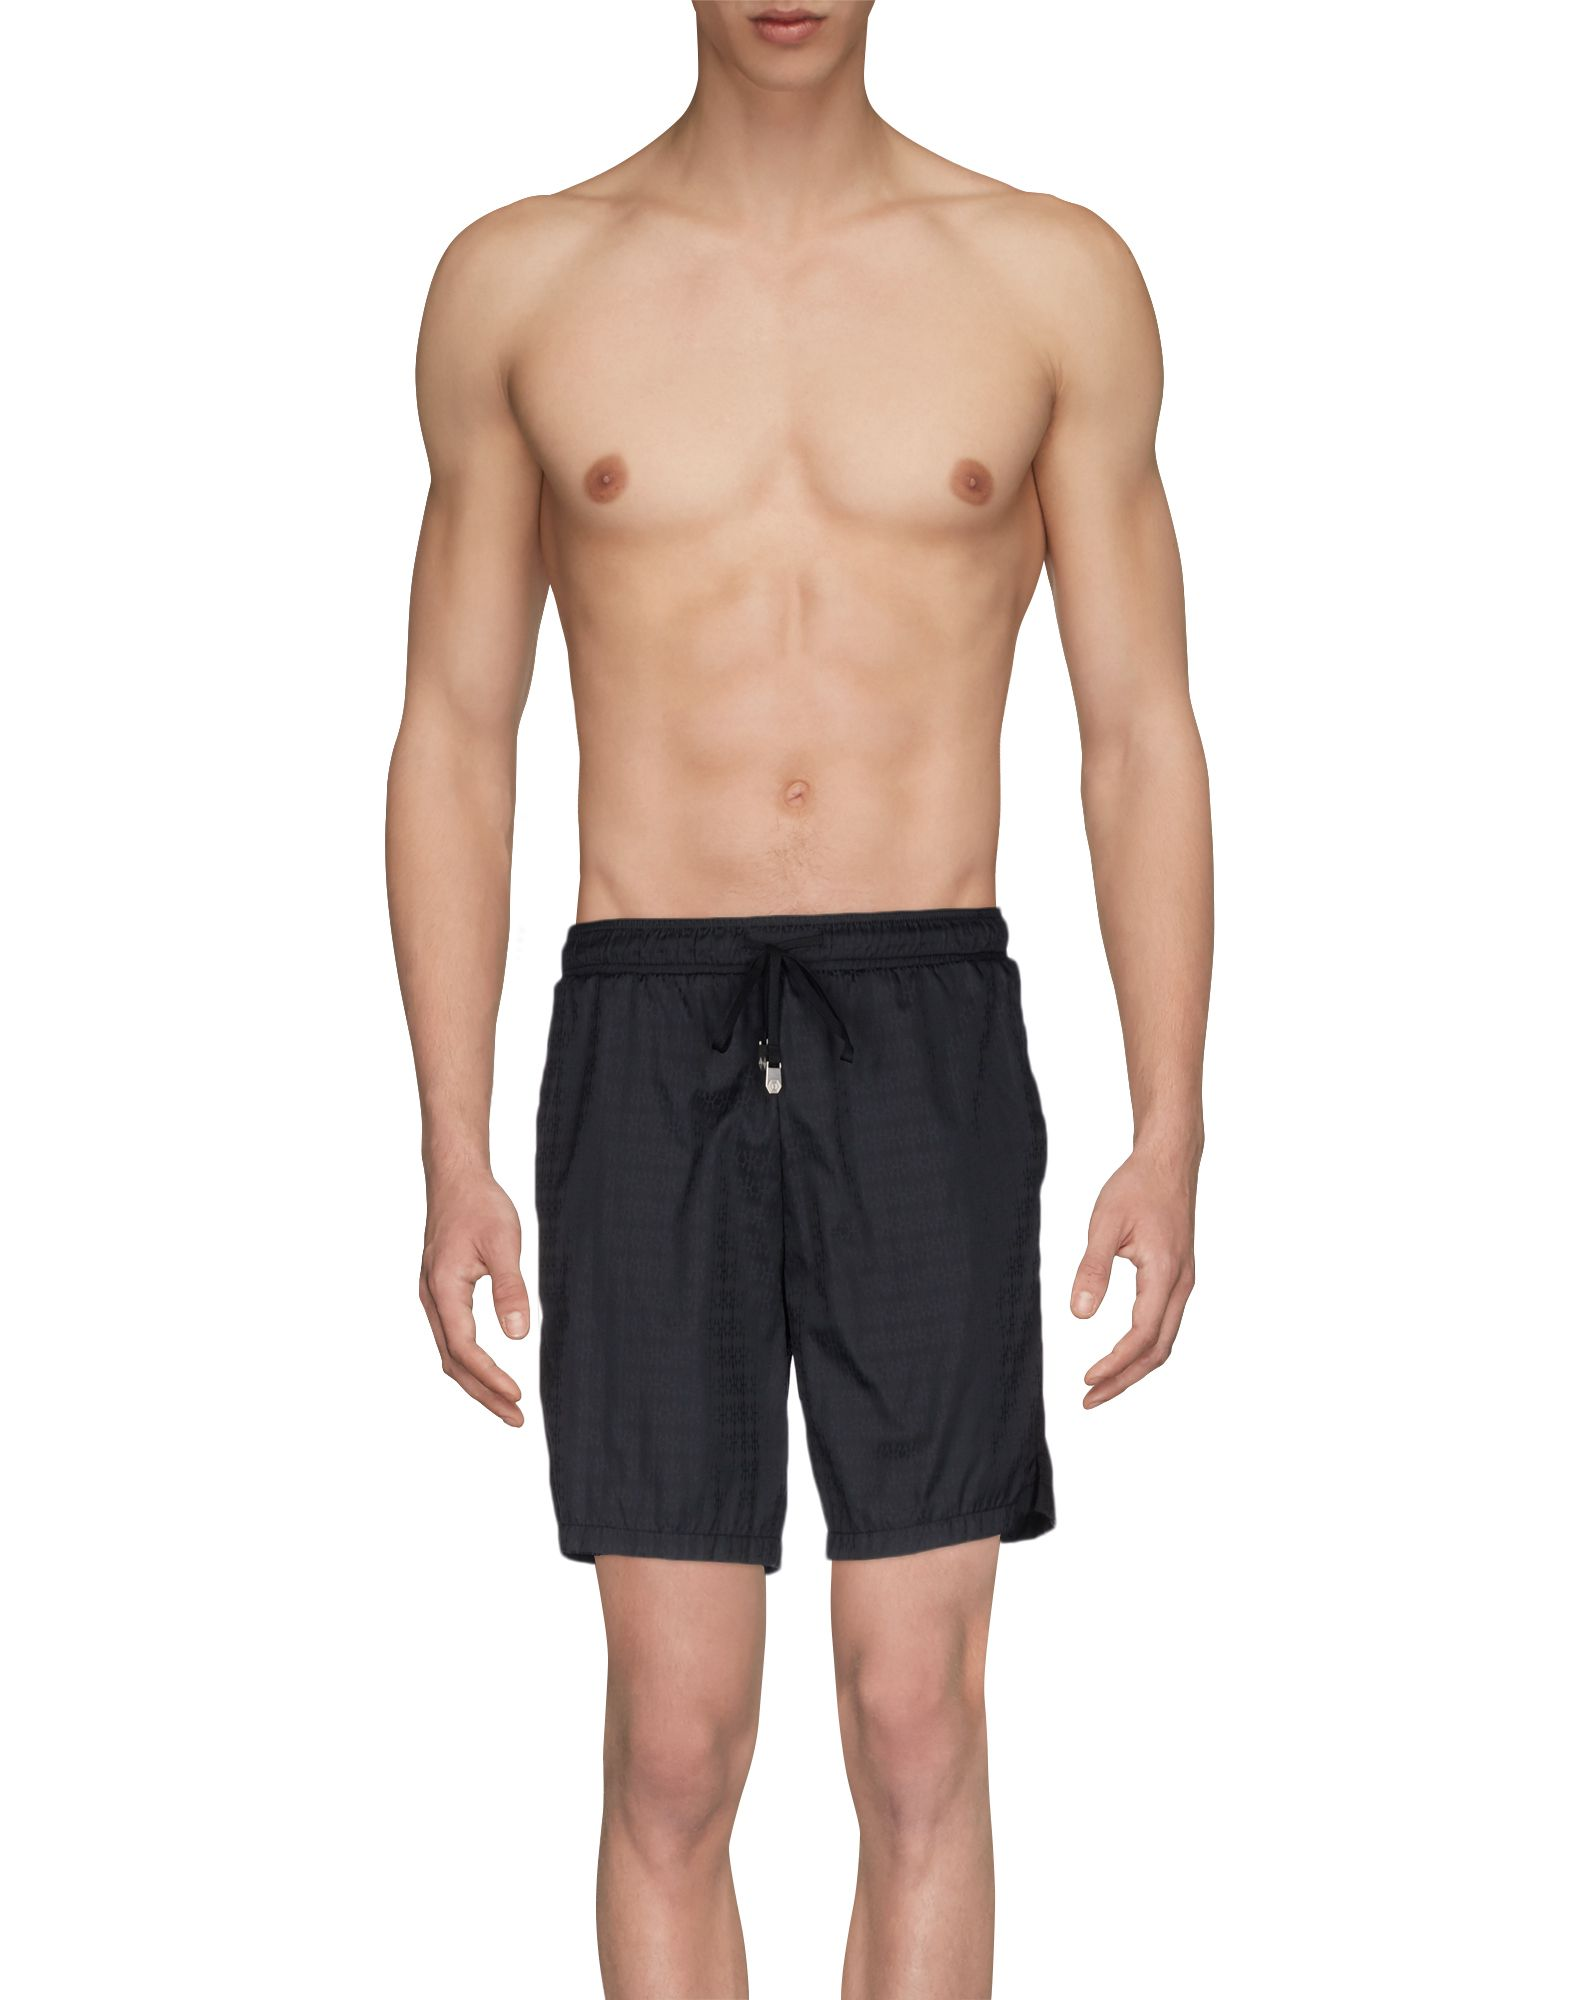 MAKE YOUR ODYSSEY Swim Shorts in Black